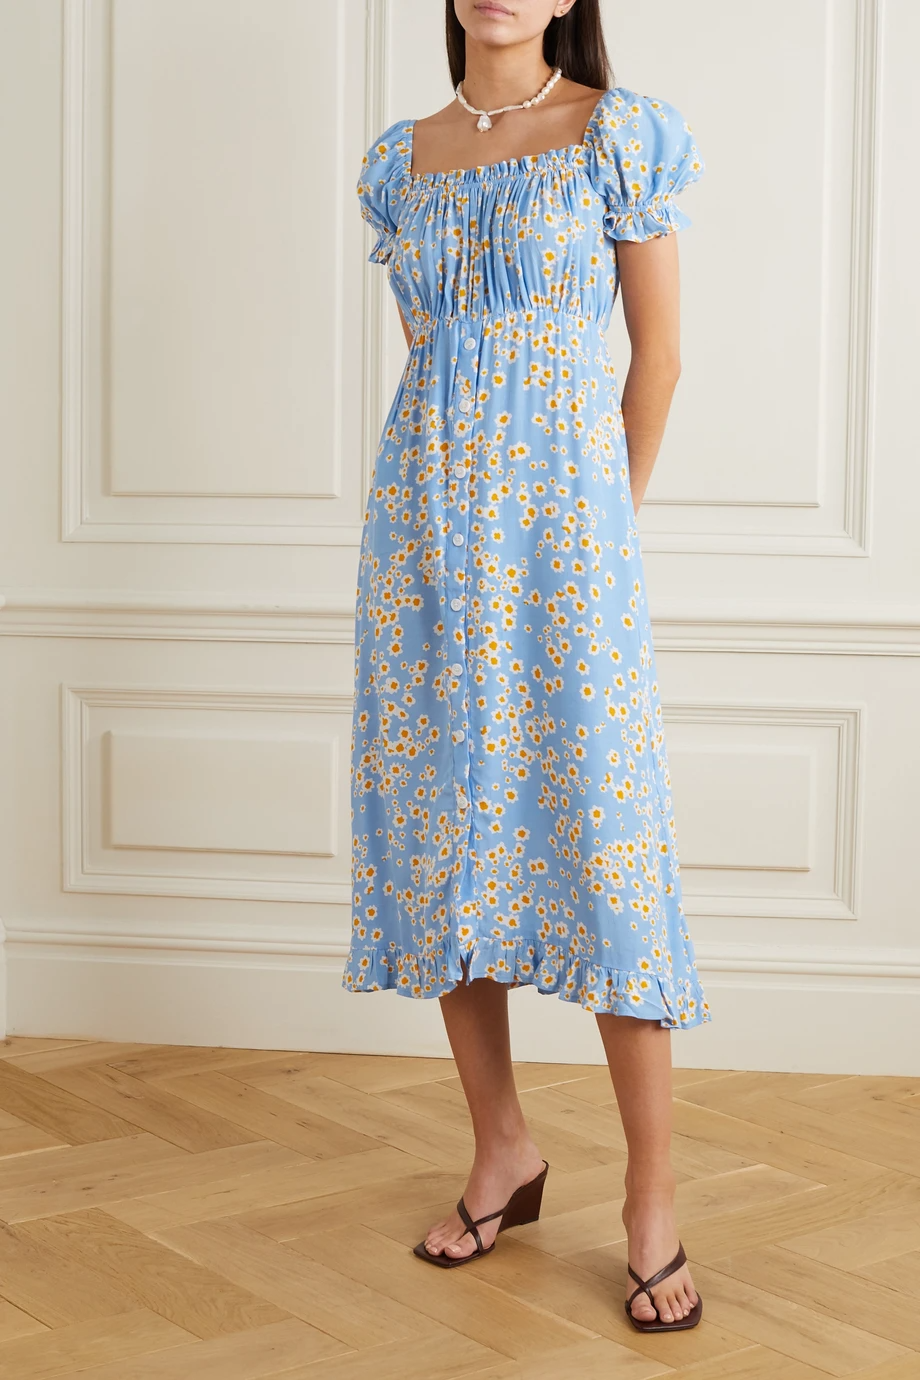 "<br> <br> <strong>Faithfull the Brand</strong> Ina Floral-Print Crepe Midi Dress, $, available at <a href=""https://go.skimresources.com/?id=30283X879131&url=https%3A%2F%2Fwww.net-a-porter.com%2Fen-us%2Fshop%2Fproduct%2Ffaithfull-the-brand%2Fina-floral-print-crepe-midi-dress%2F1193979"" rel=""nofollow noopener"" target=""_blank"" data-ylk=""slk:Net-A-Porter"" class=""link rapid-noclick-resp"">Net-A-Porter</a>"